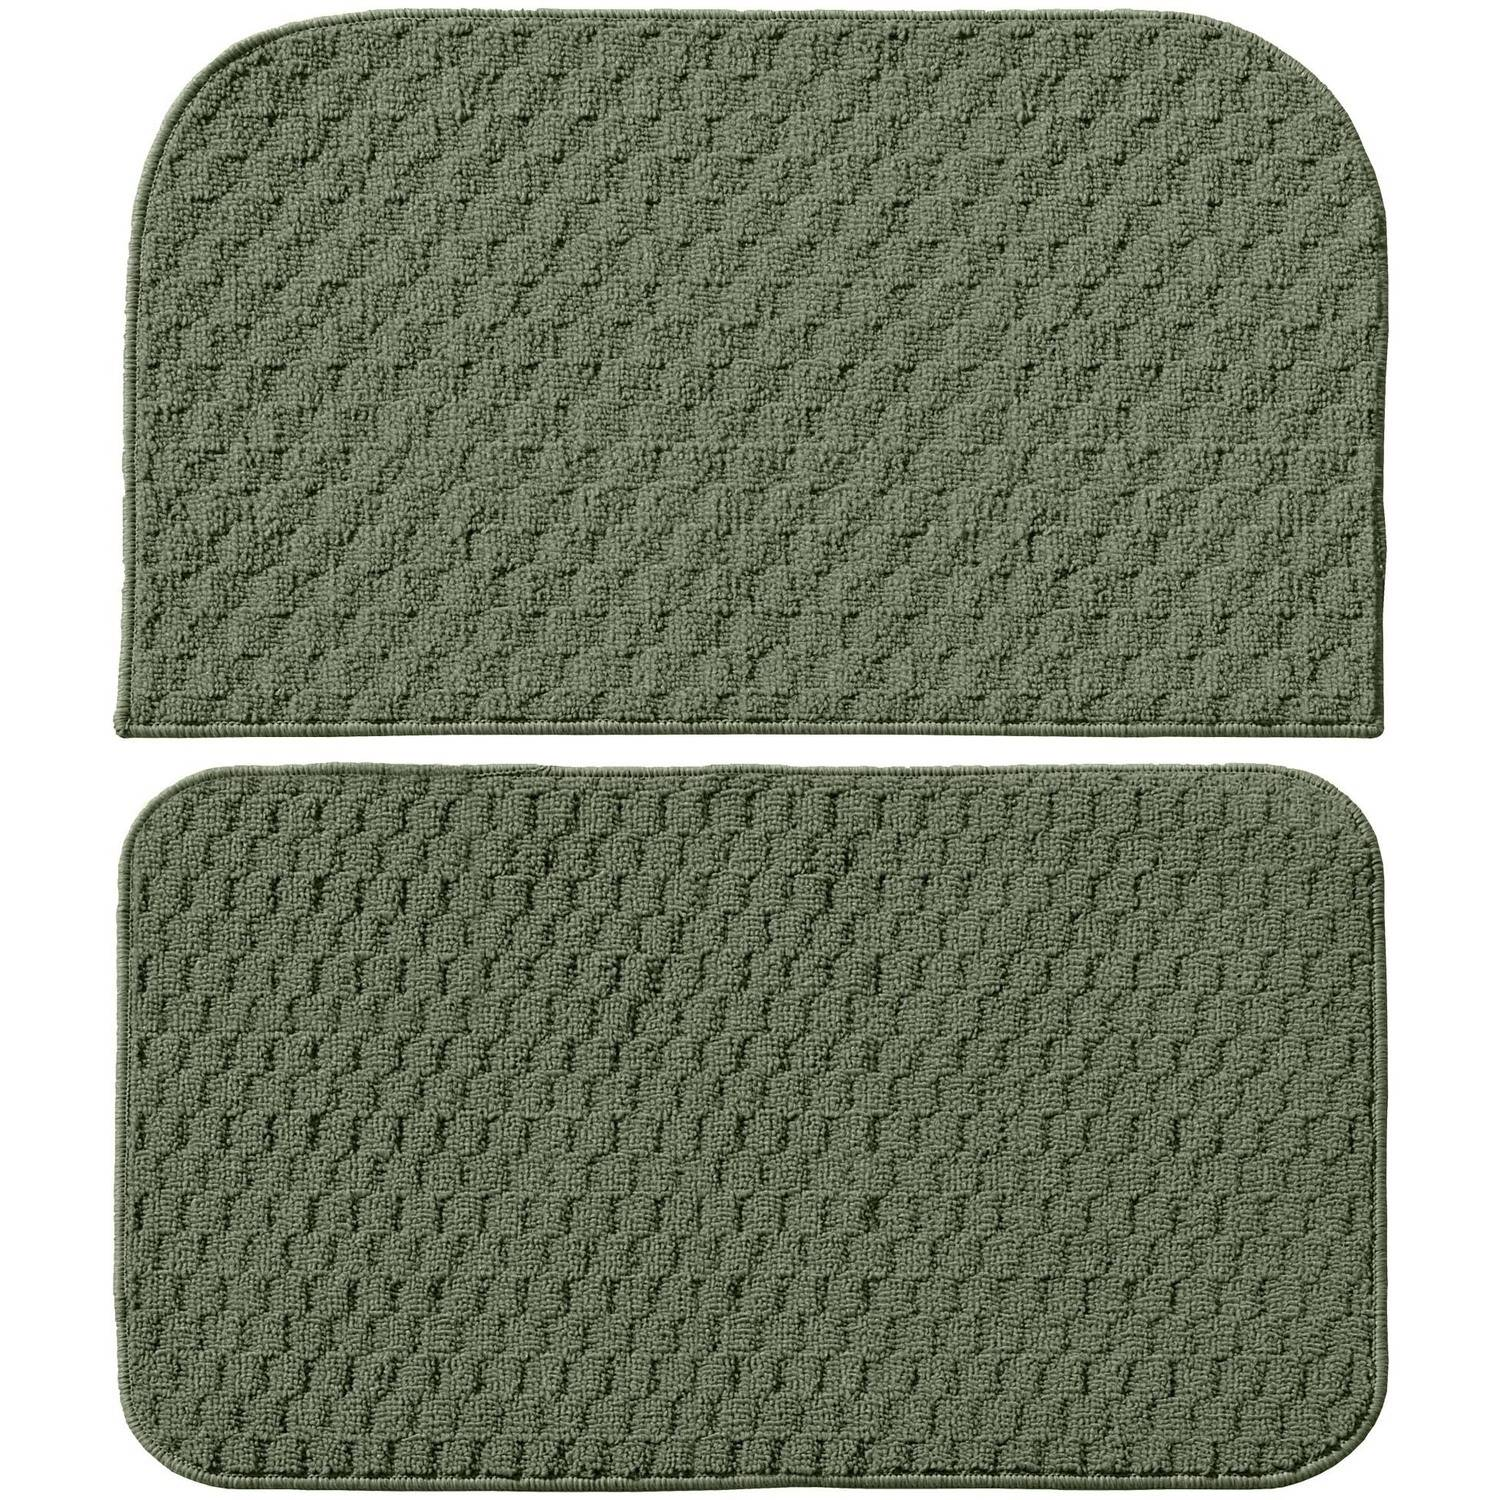 Garland Rug Town Square 2pc Kitchen Rug Slice And Mat, ...